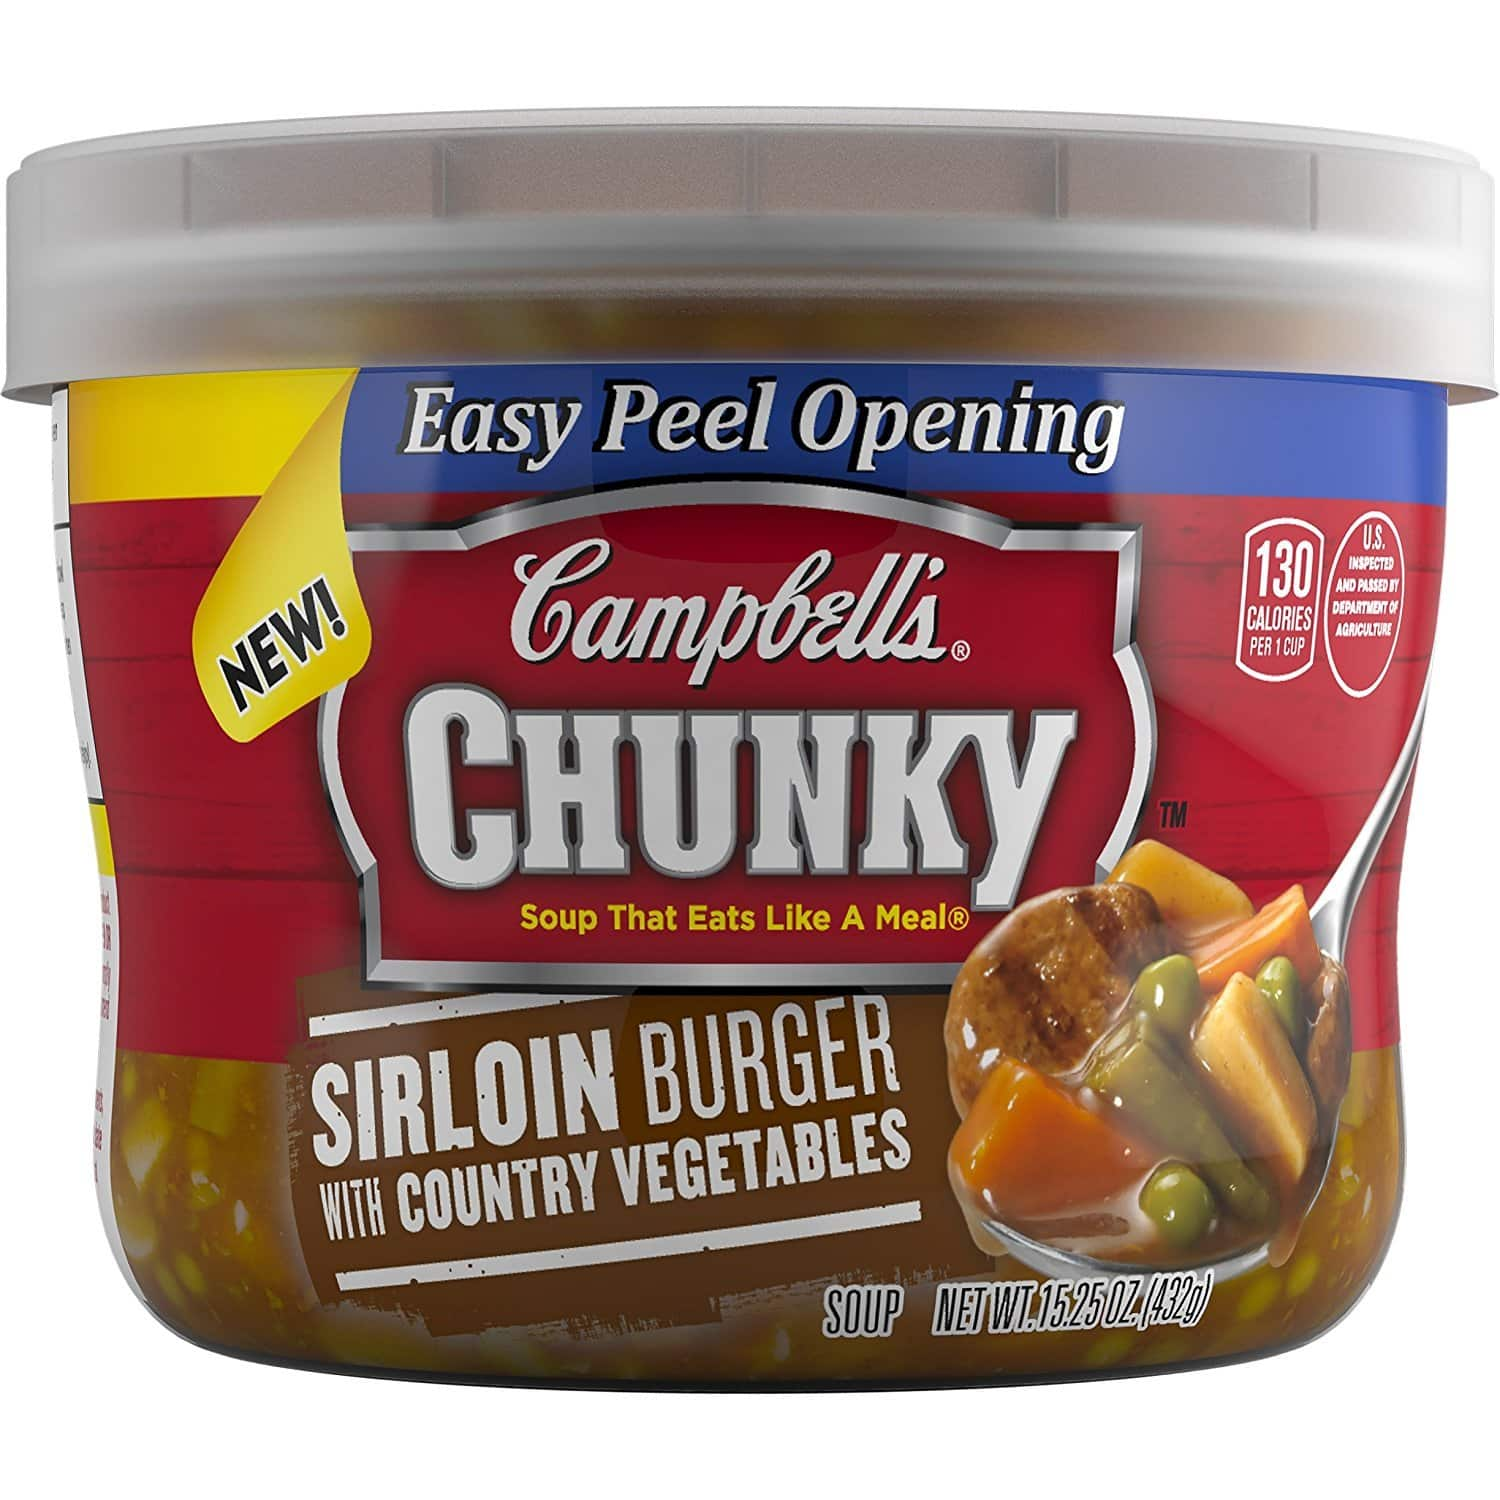 8-Pack of 15.25oz Campbell's Chunky Soup (Clam Chowder) $8.40 w/ S&S